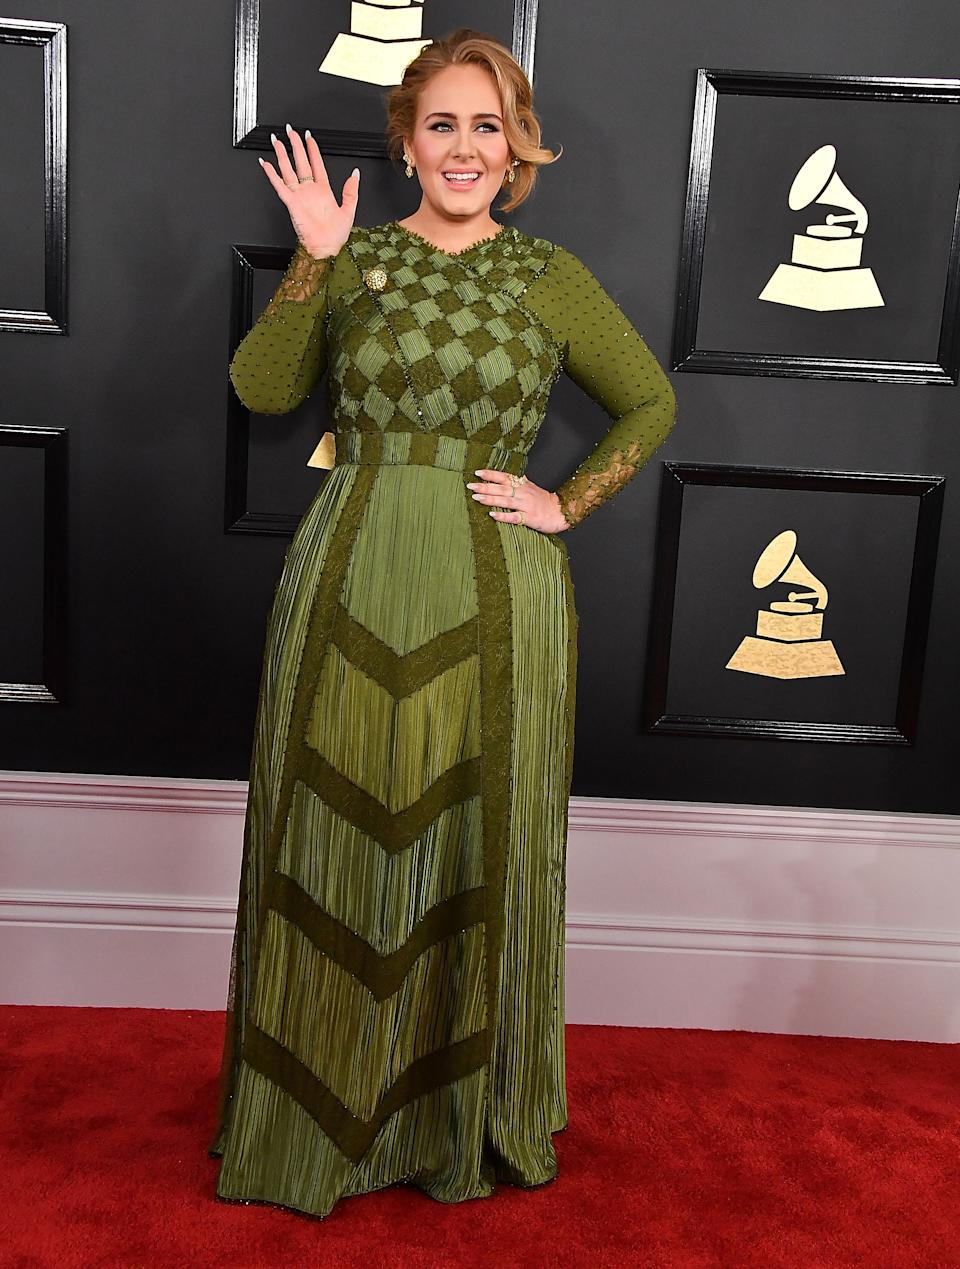 LOS ANGELES, CA - FEBRUARY 12:  Adele arrives at the 59th GRAMMY Awards on February 12, 2017 in Los Angeles, California.  (Photo by Steve Granitz/WireImage)